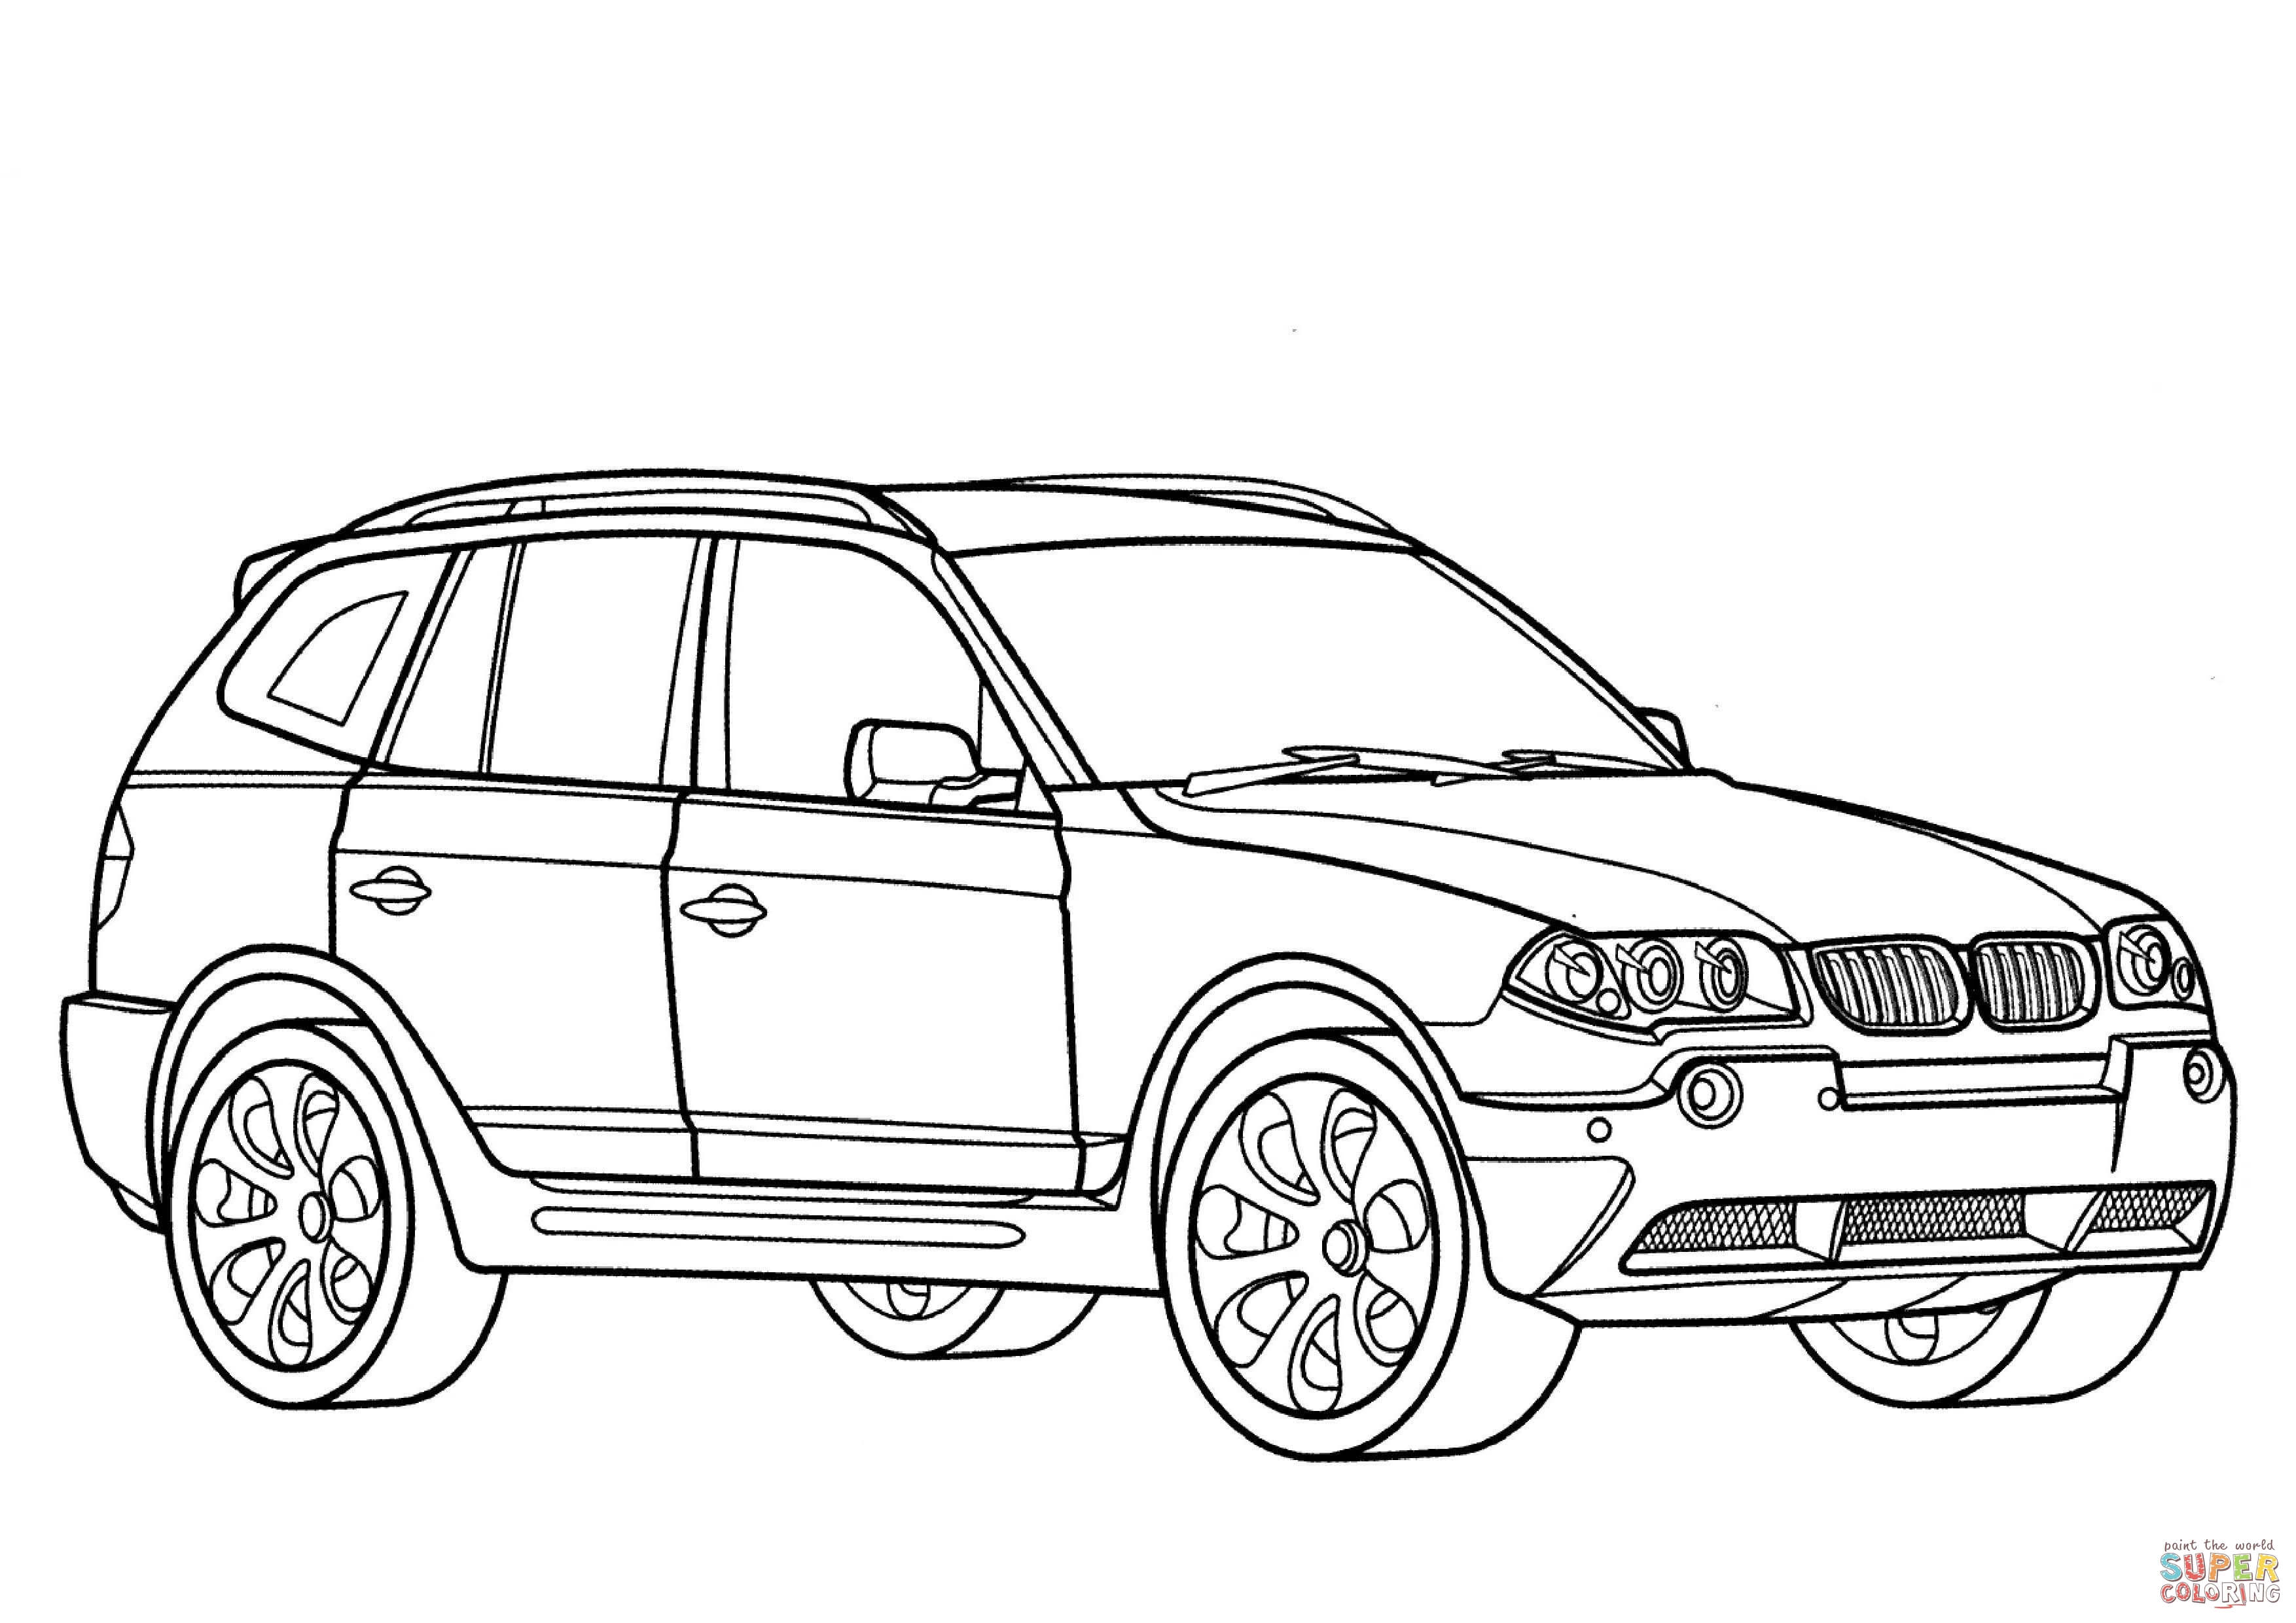 Bmw Coloring Pages Police Car Coloring Pages Bmw Coloring Pages Coloring Home